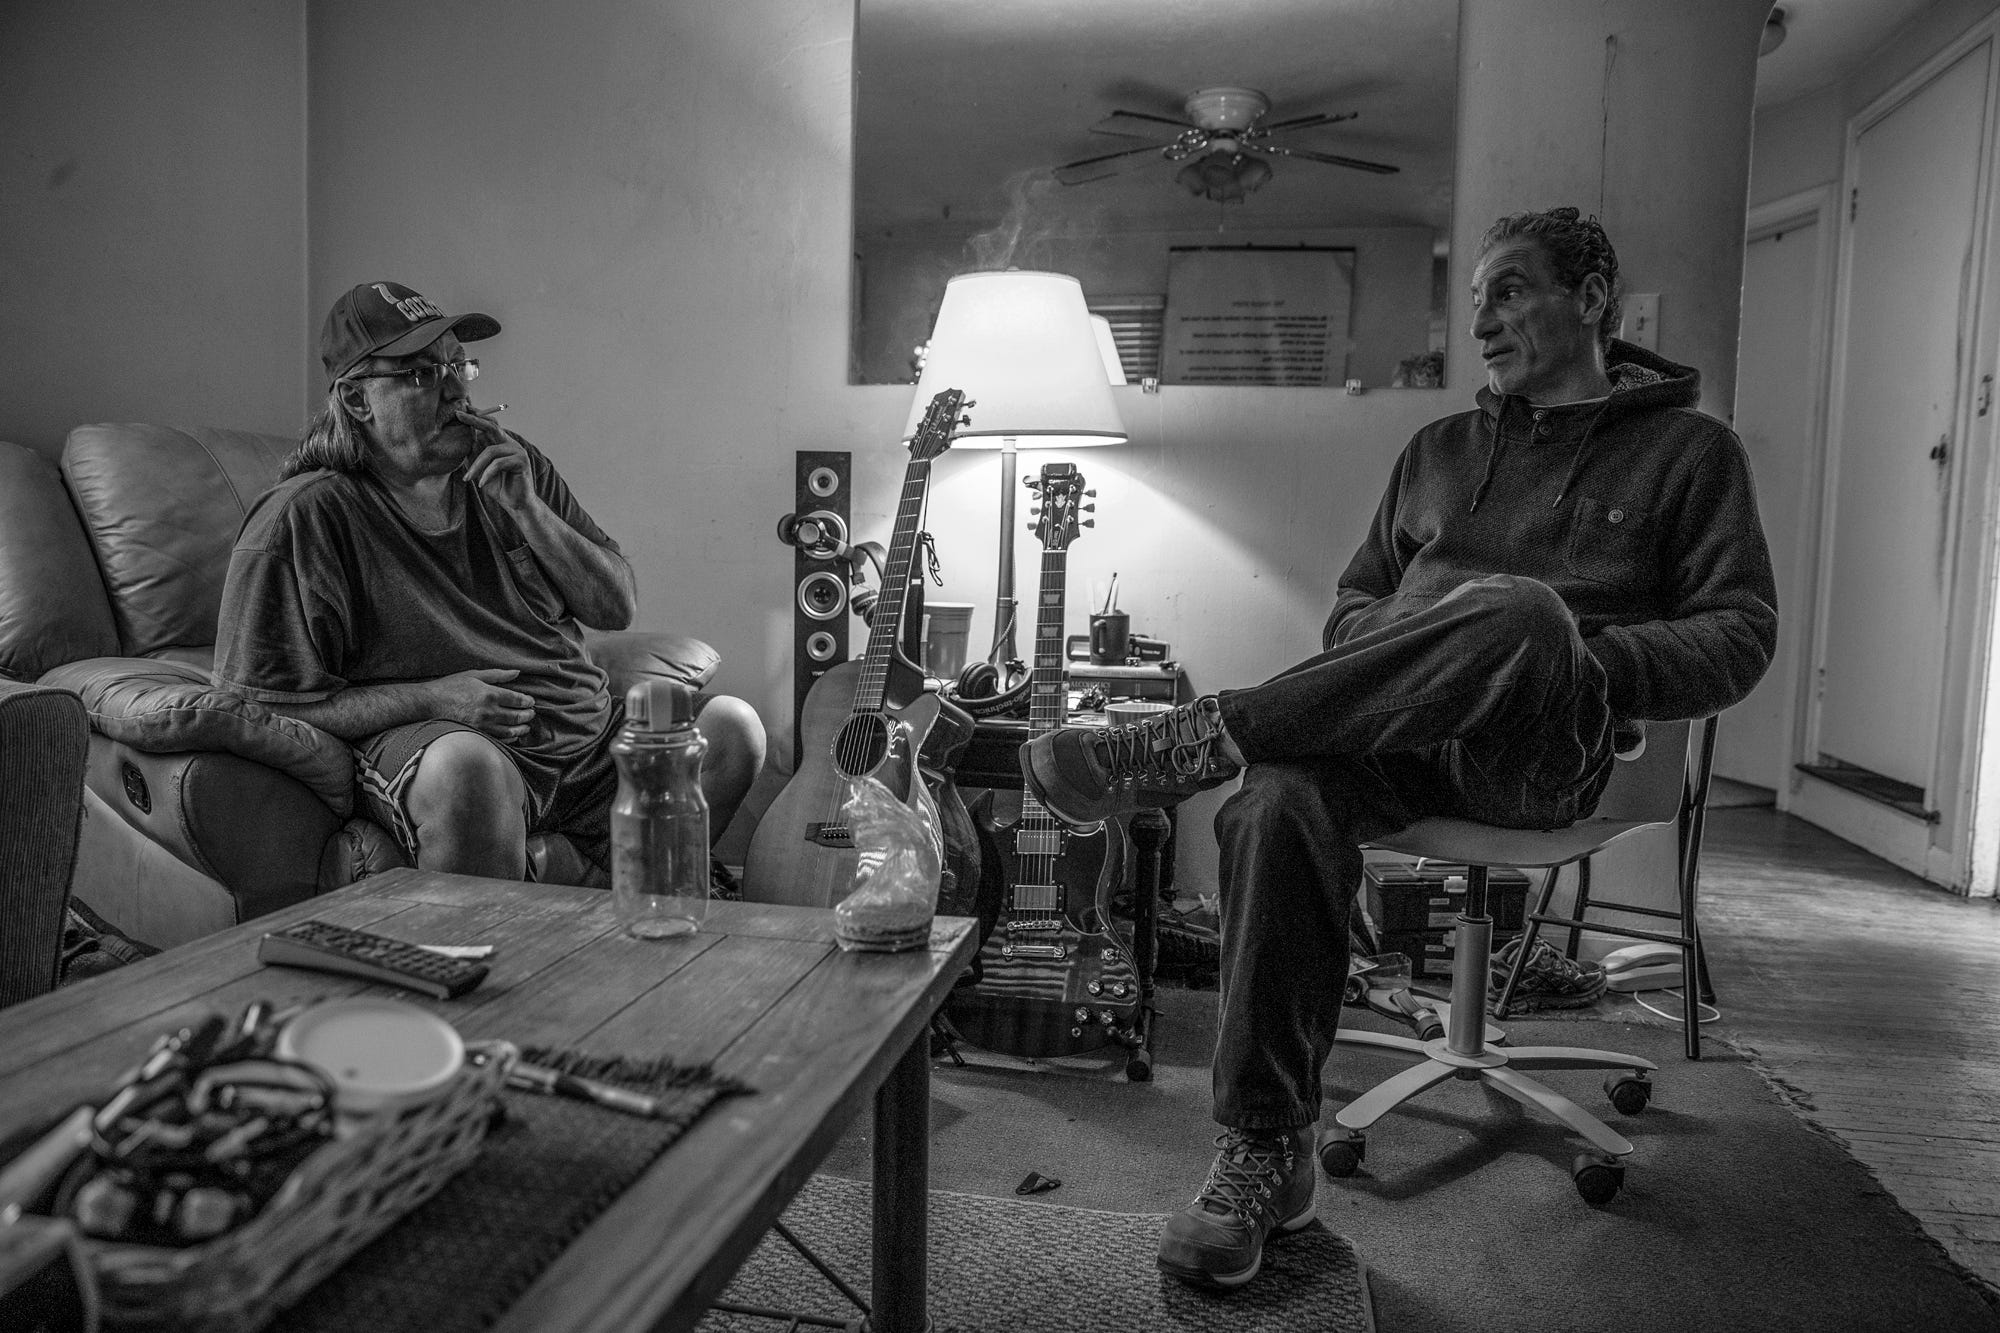 Ed Correll (left), a resident who lives in the halfway house in front of Pazzarelli's home, smokes a cigarette during an afternoon meeting in Indianapolis on Tuesday, Jan. 29, 2019.